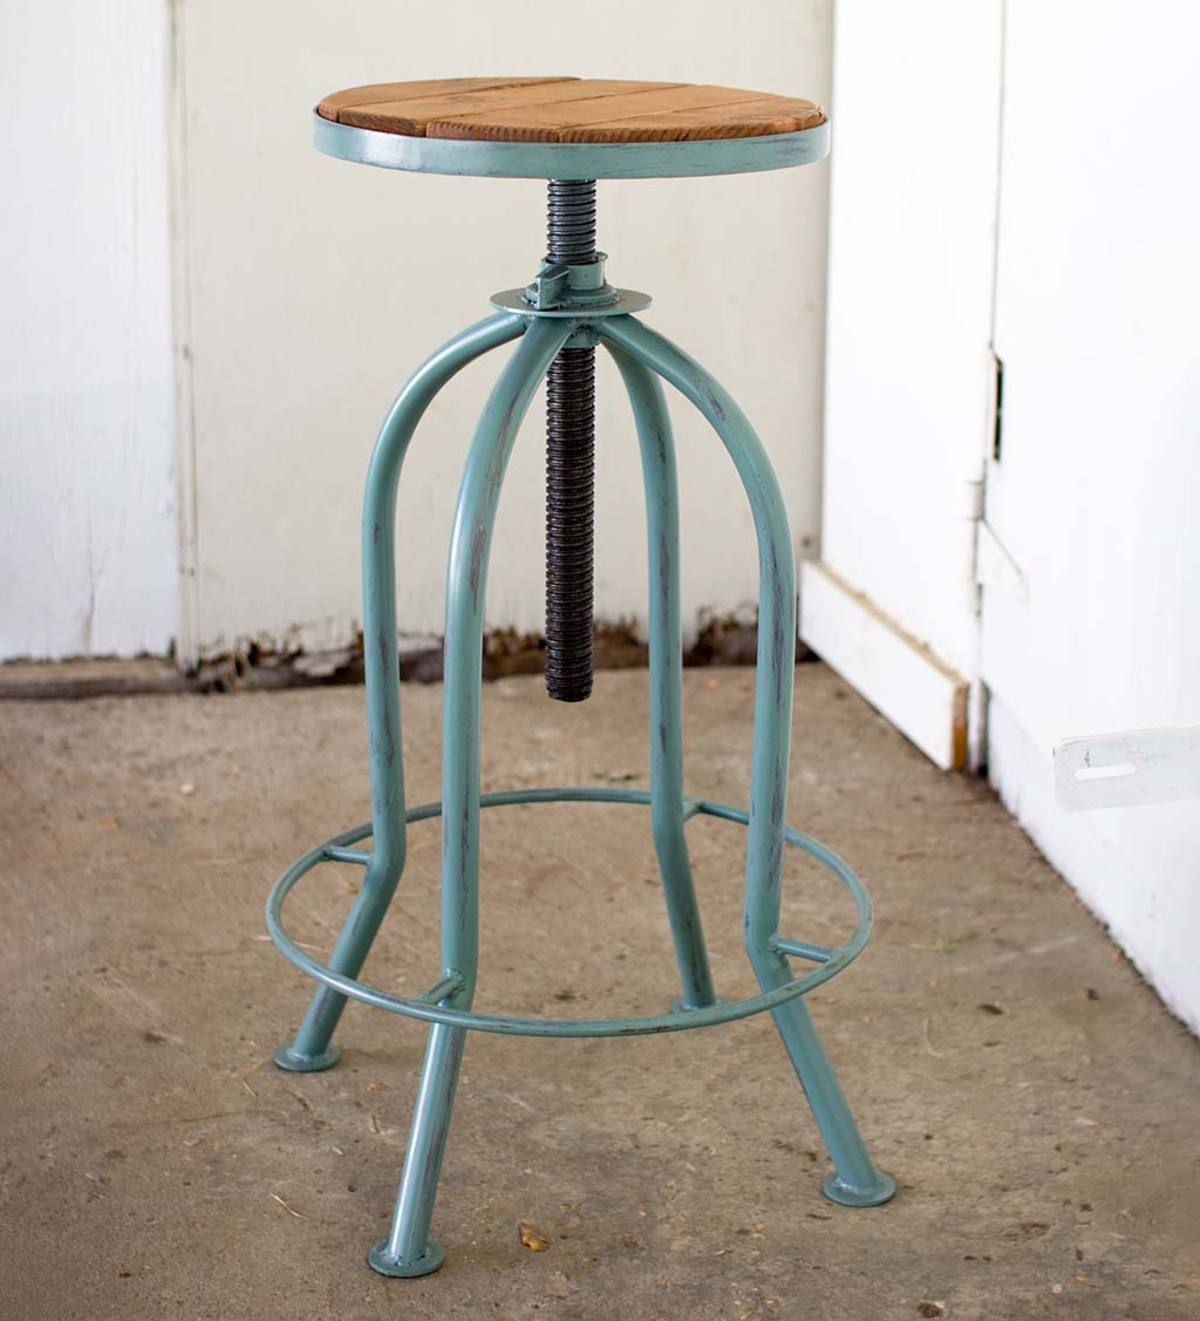 Adjustable Height Bar Stool with Recycled Wood